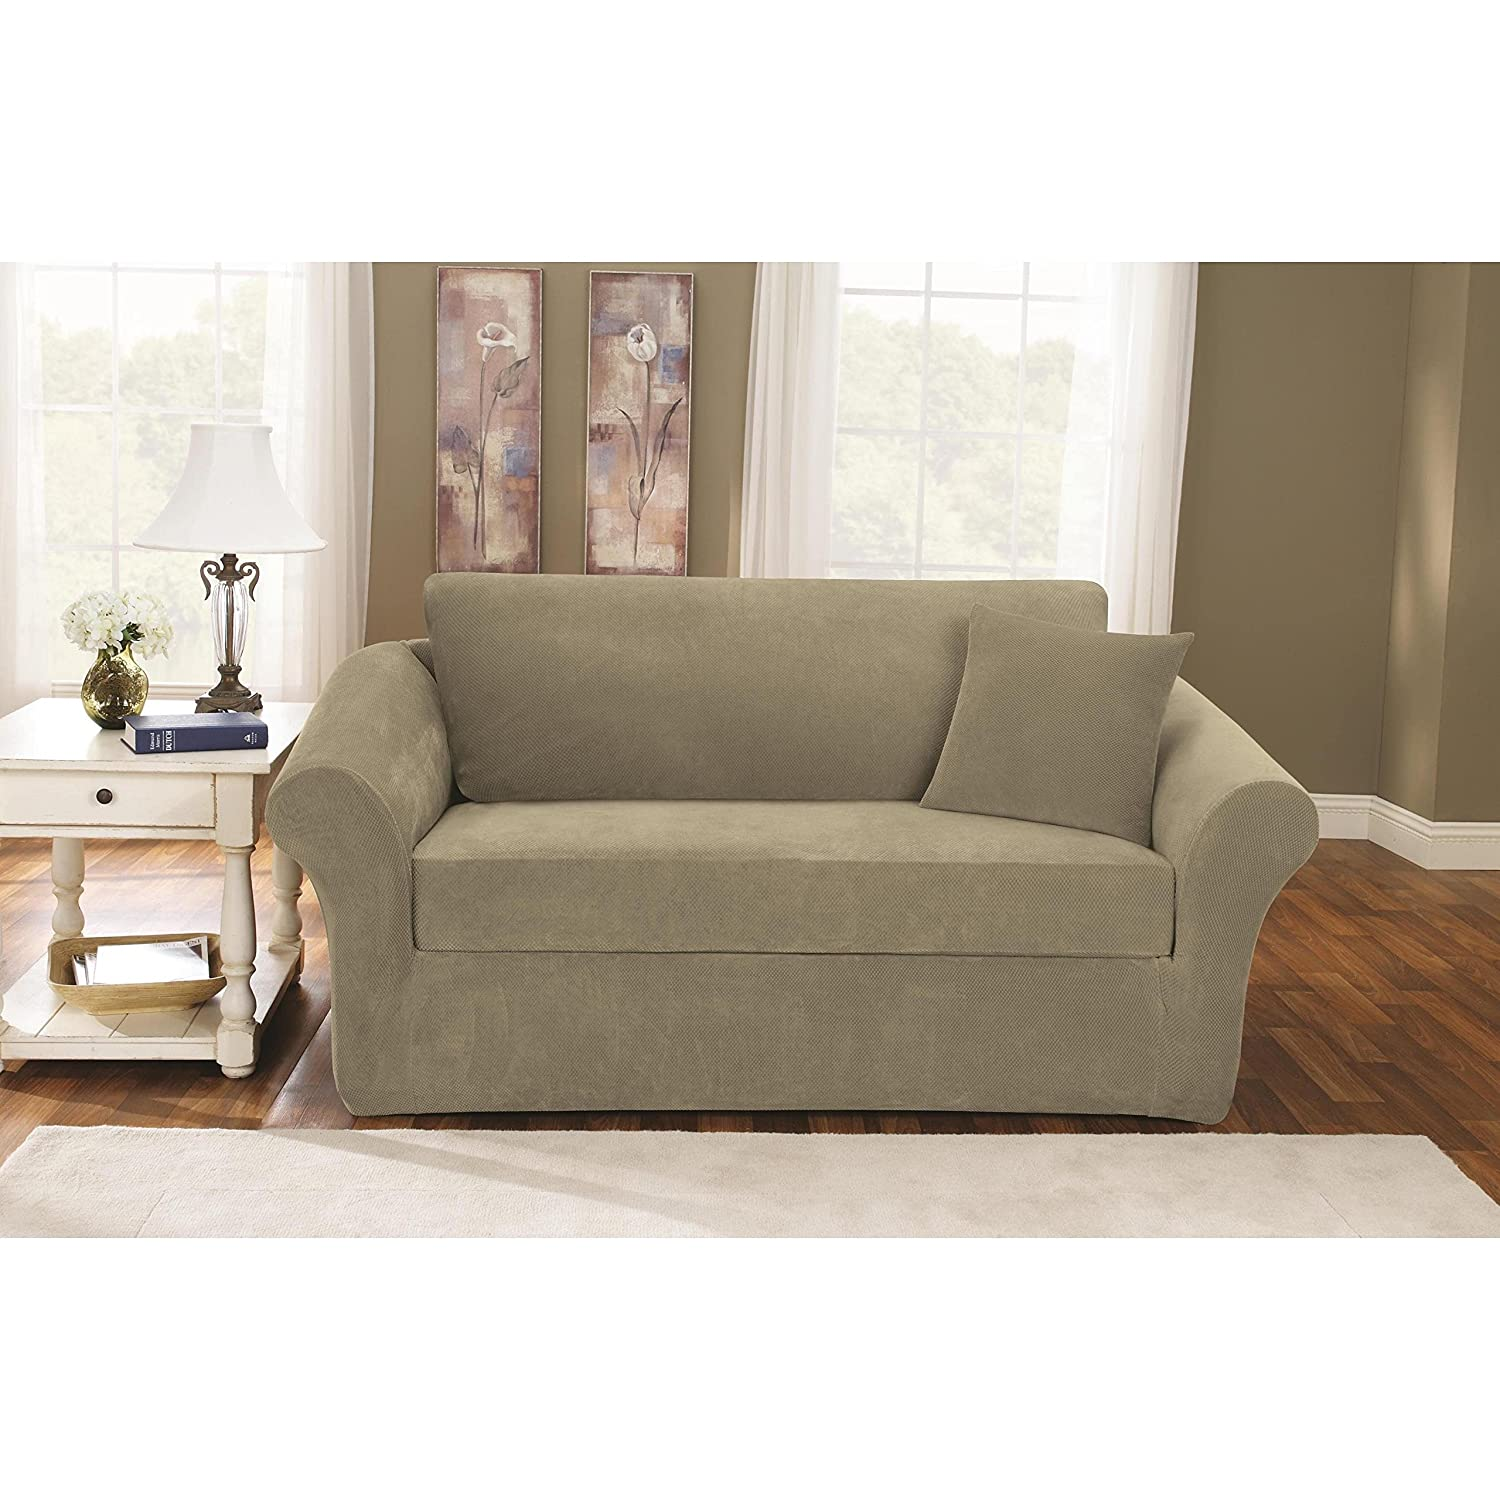 Amazon Sure Fit Stretch Pique Knit Sofa Slipcover Cream